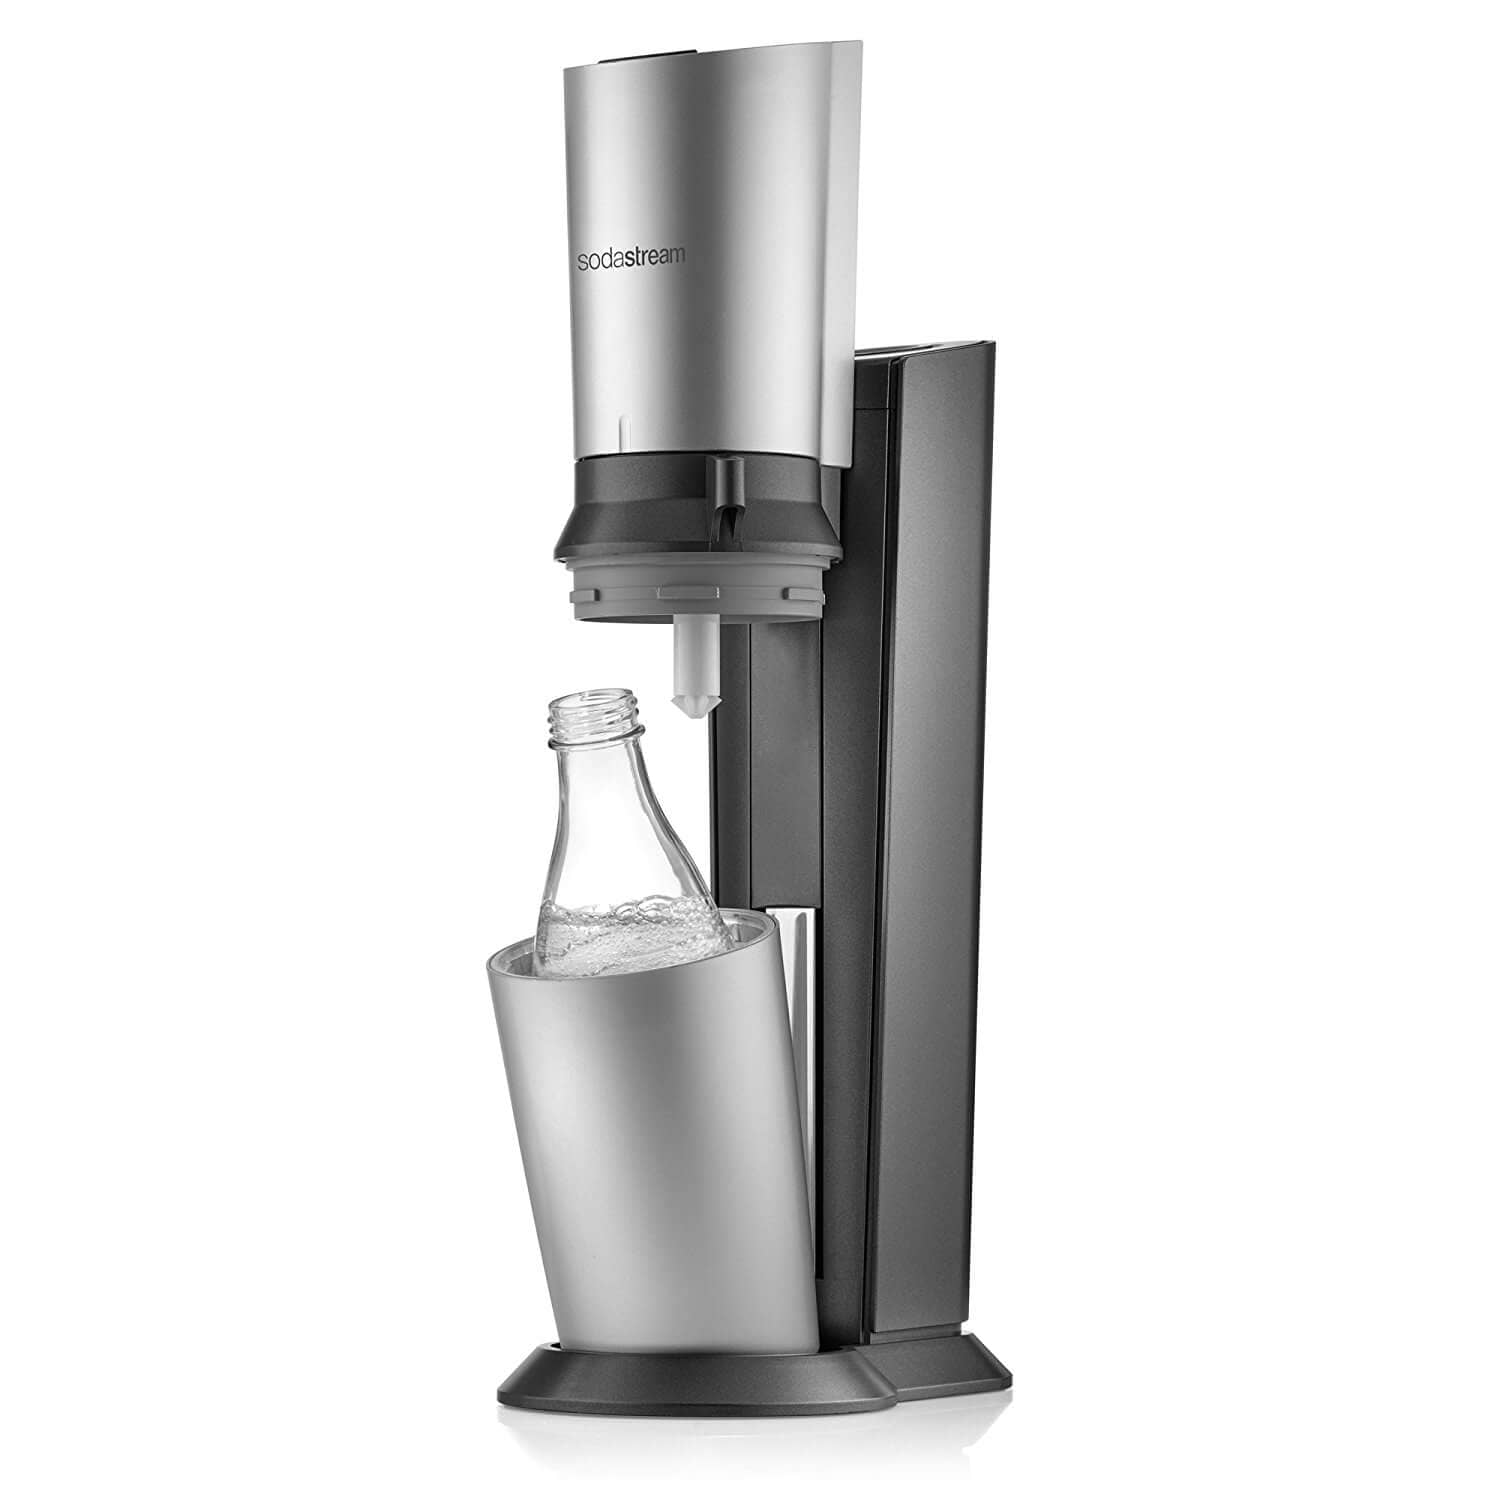 Soda Stream Sparkling Water Maker